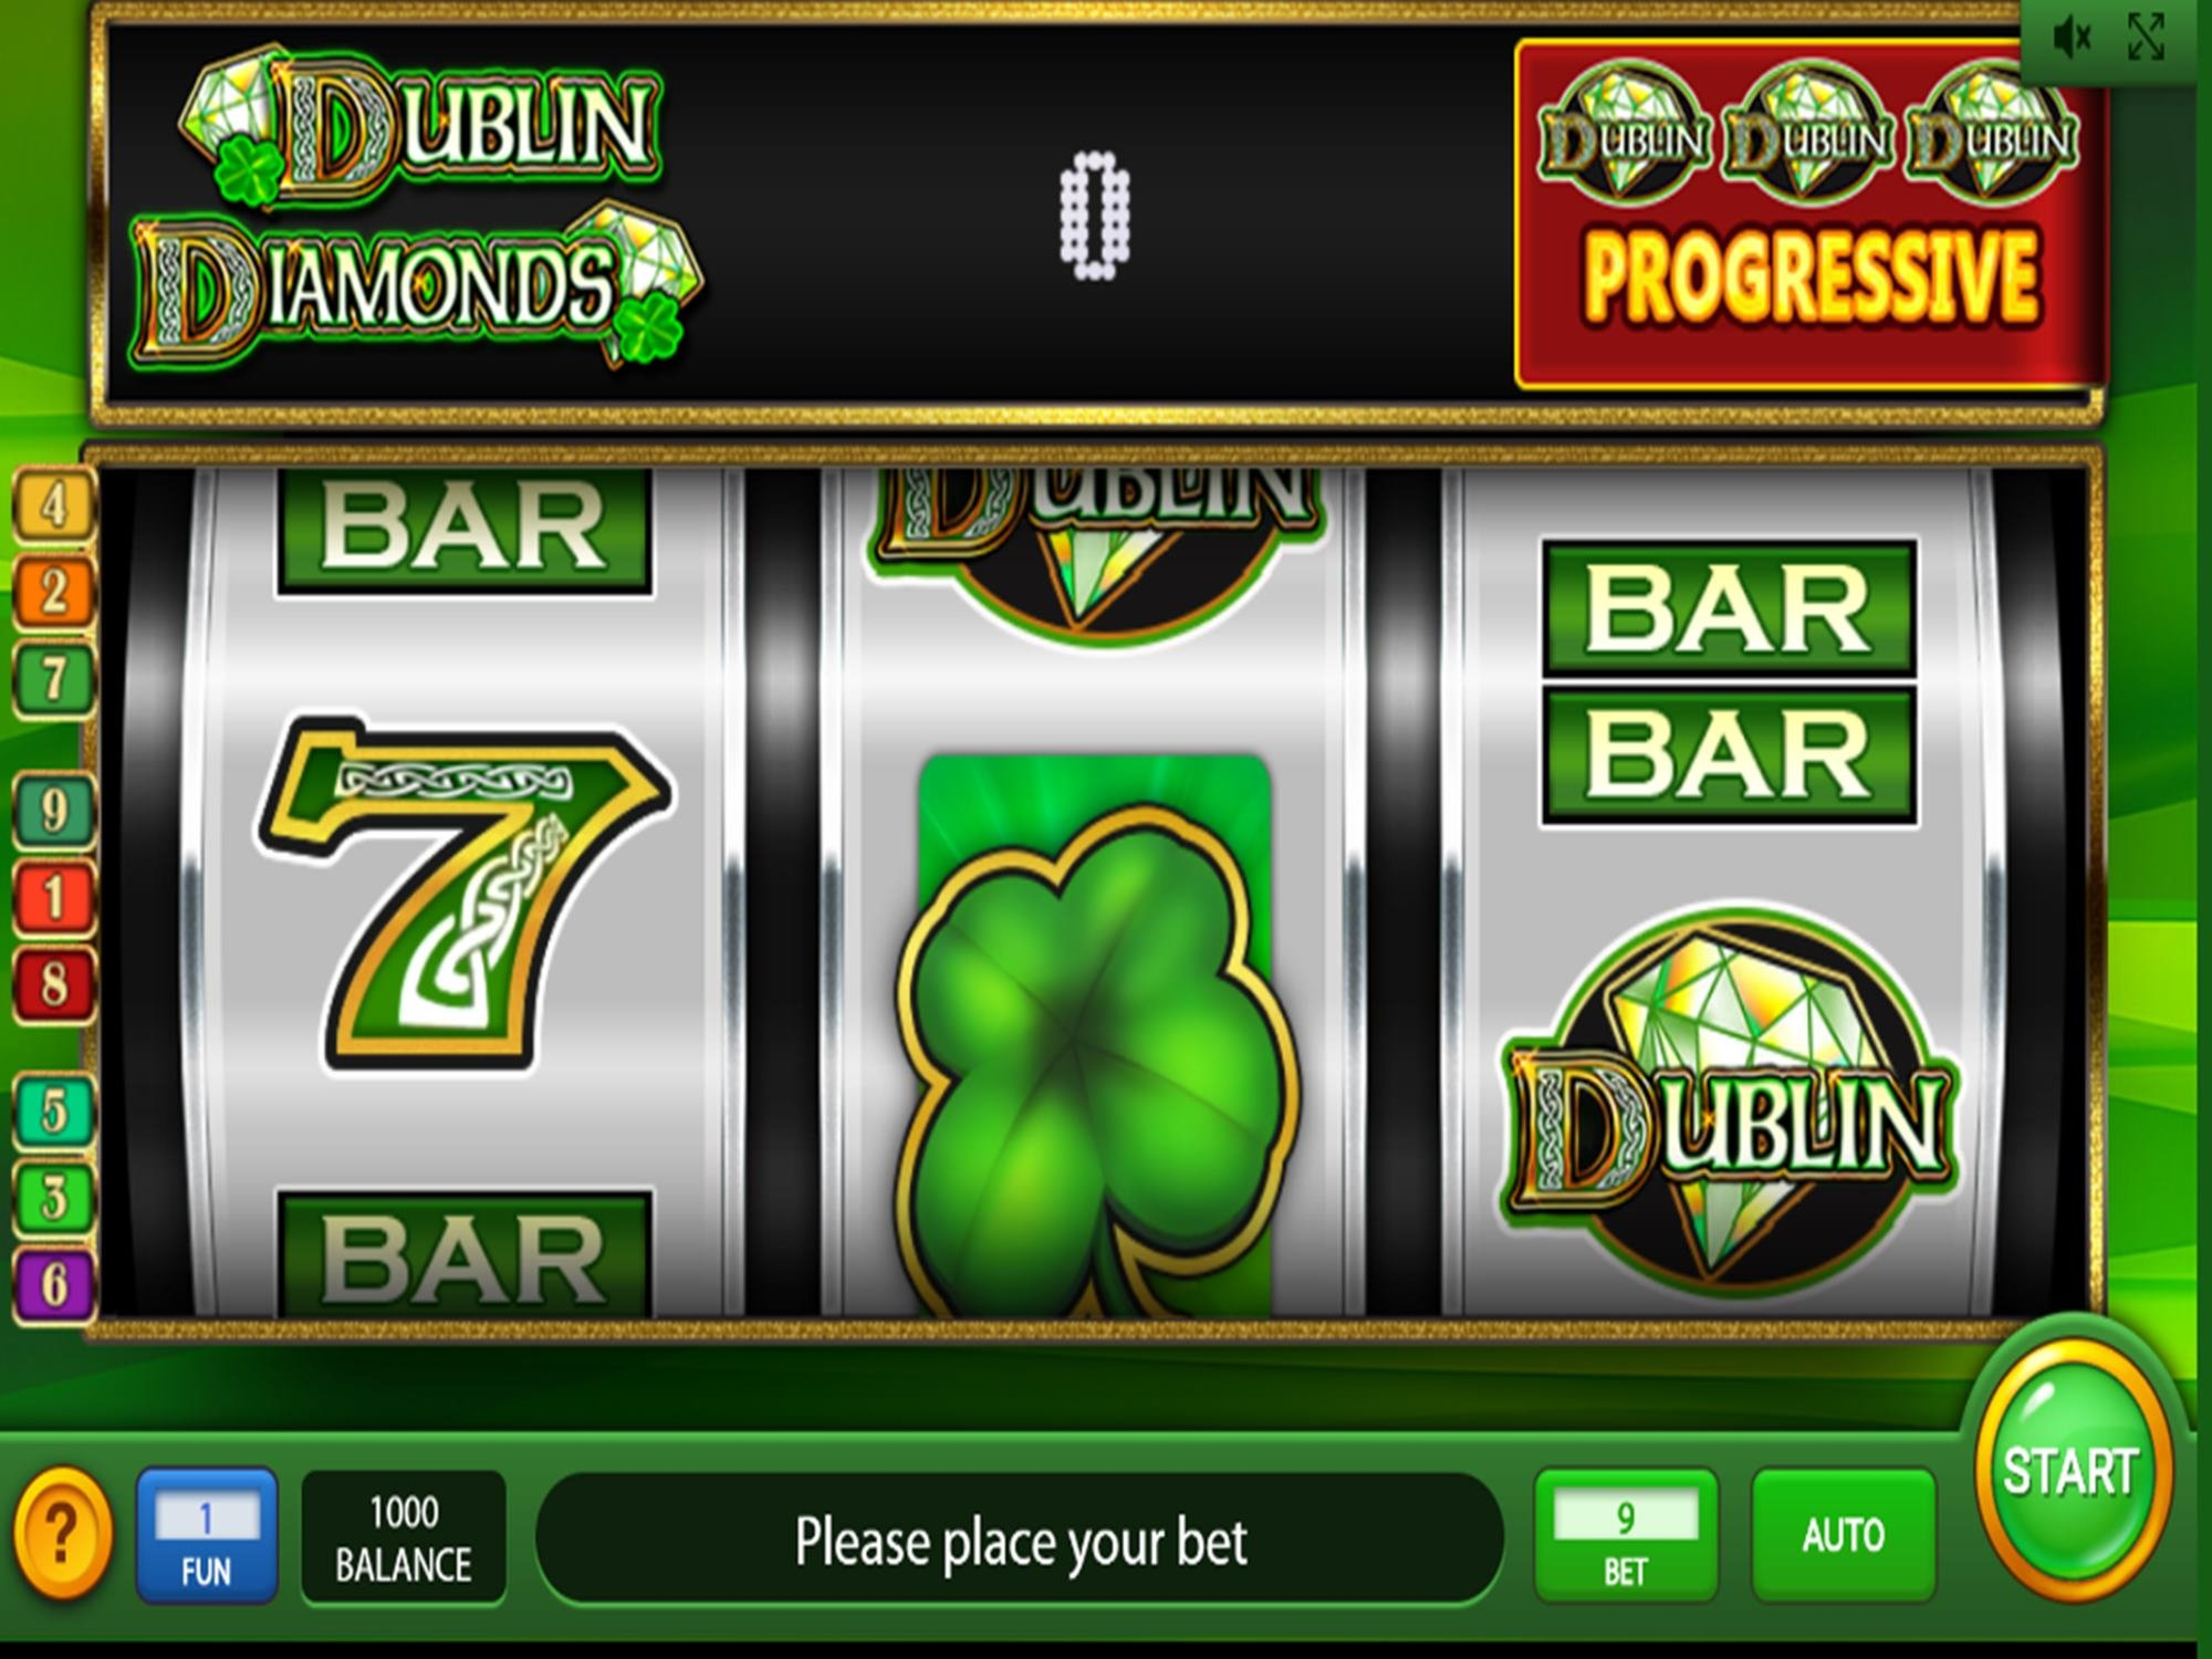 The Dublin Diamonds Online Slot Demo Game by IGT